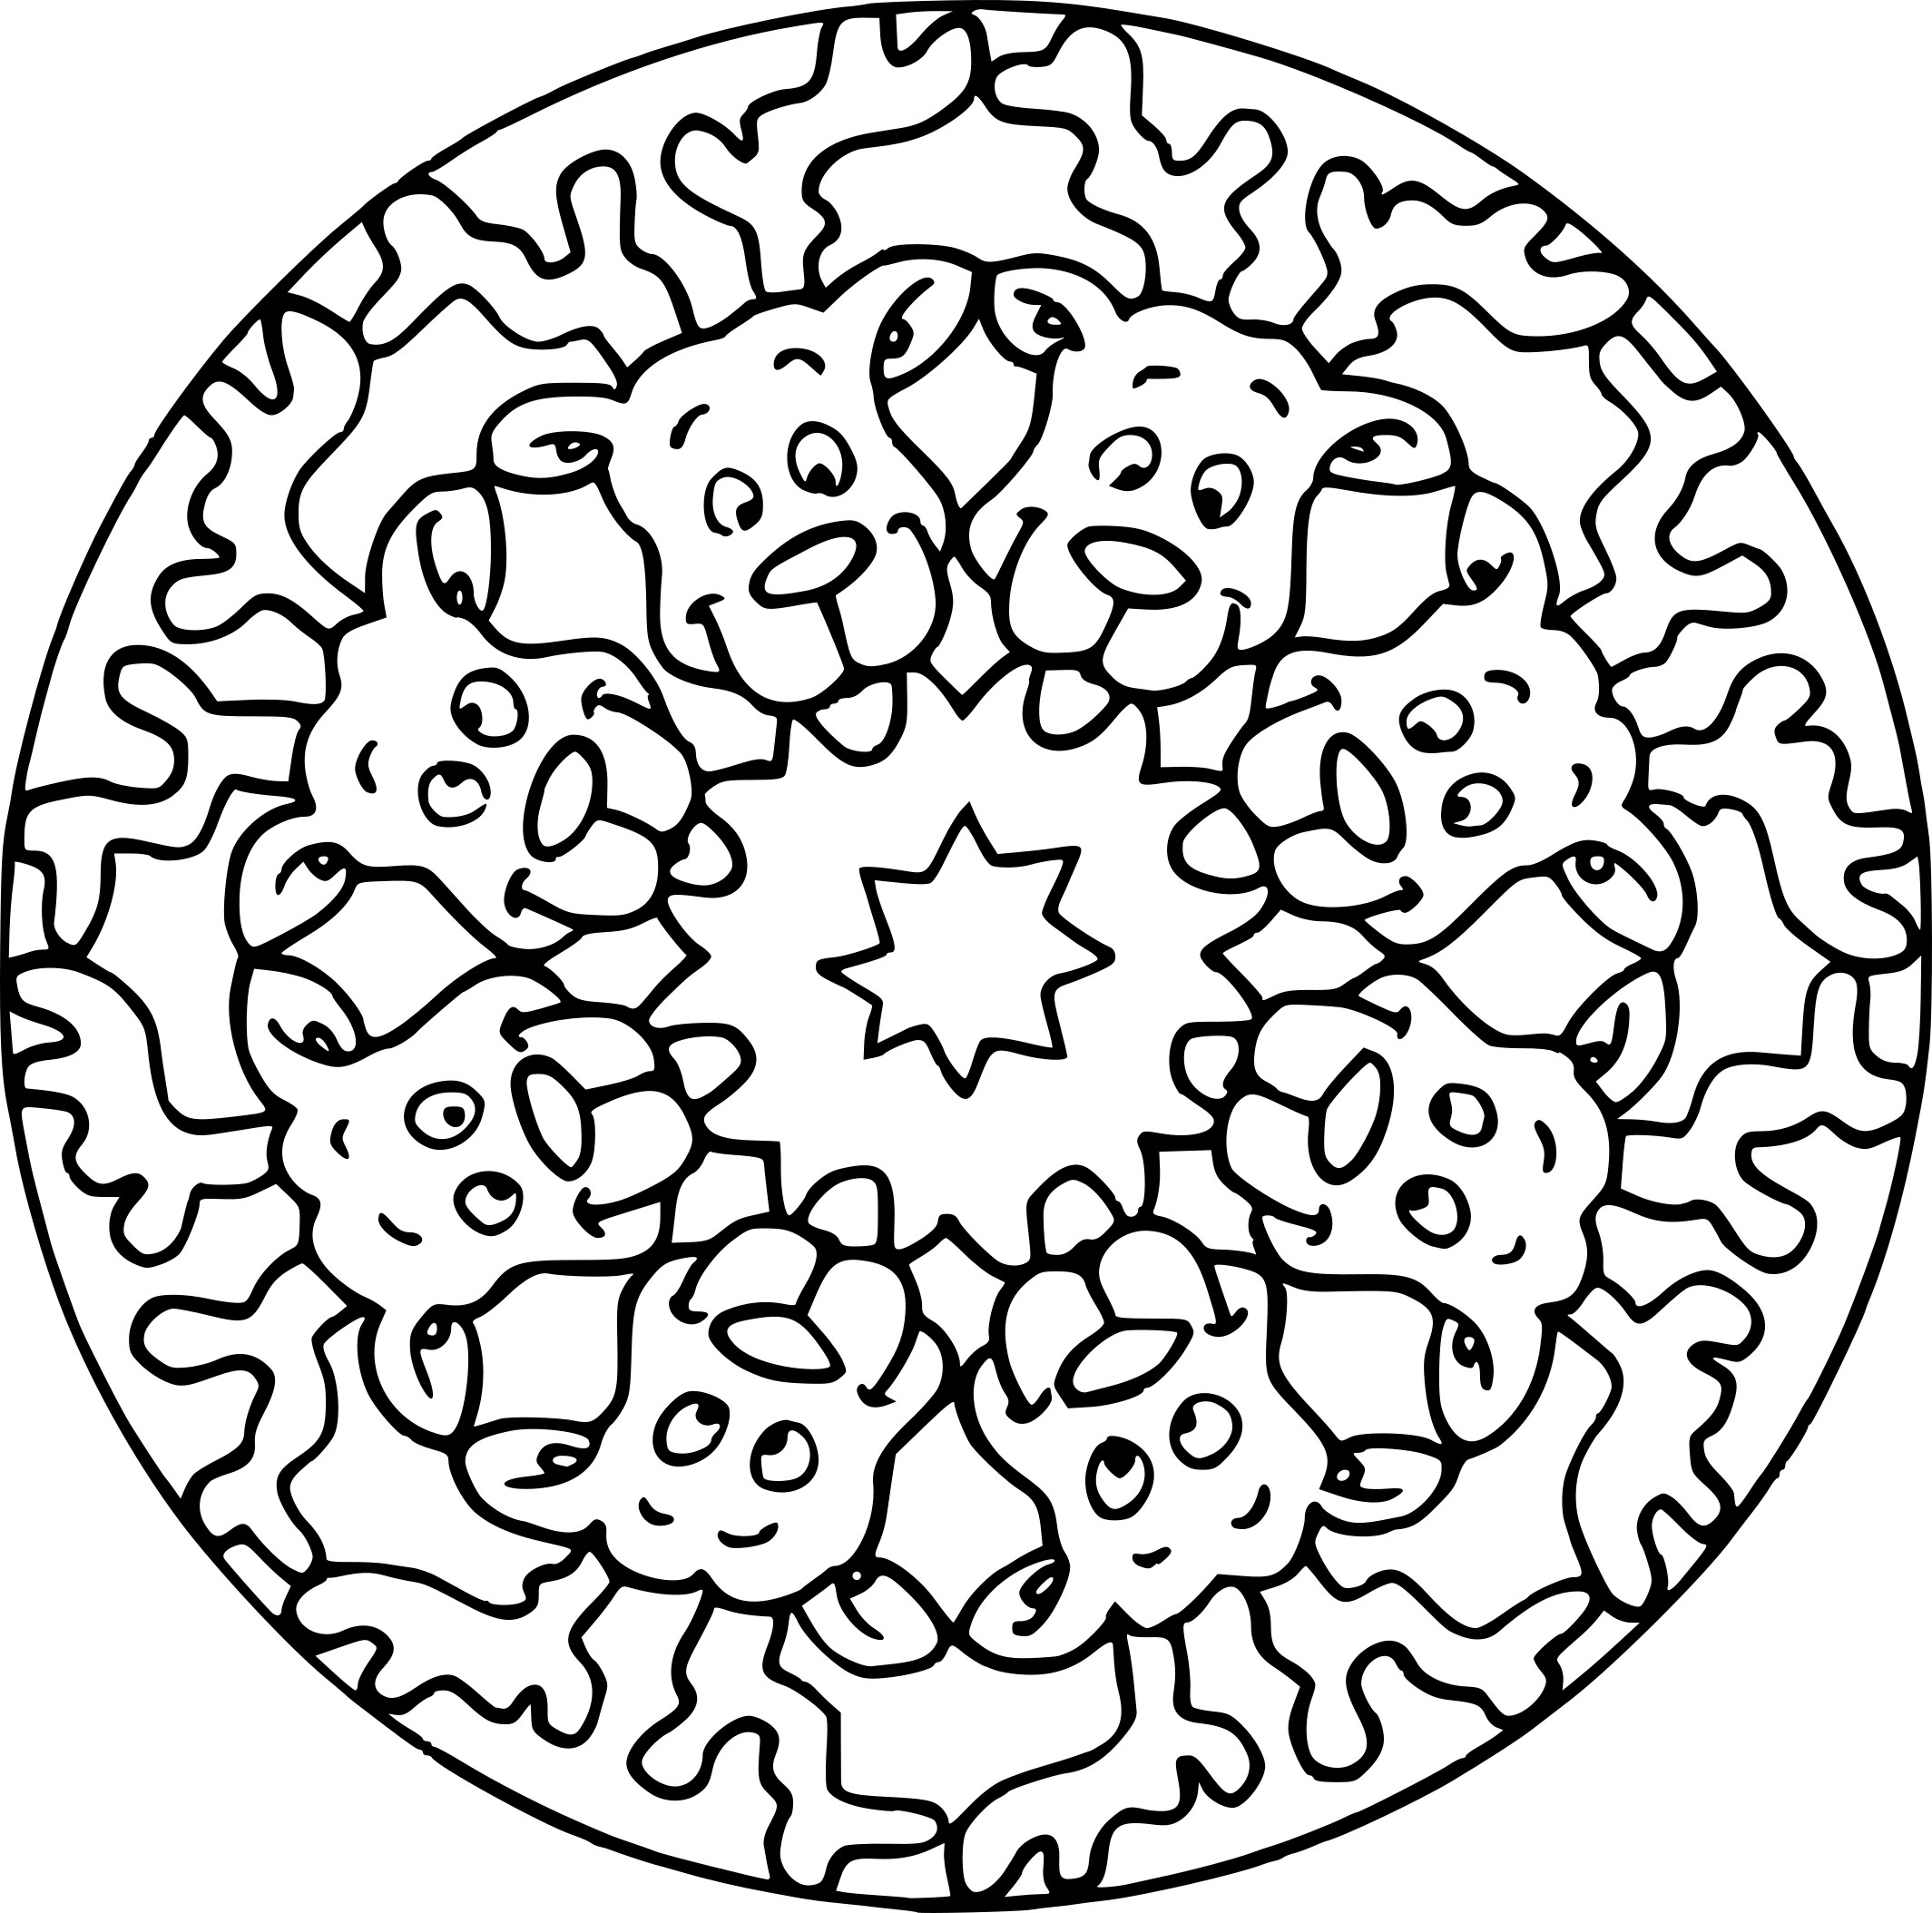 bulldog coloring pages - mandala chien